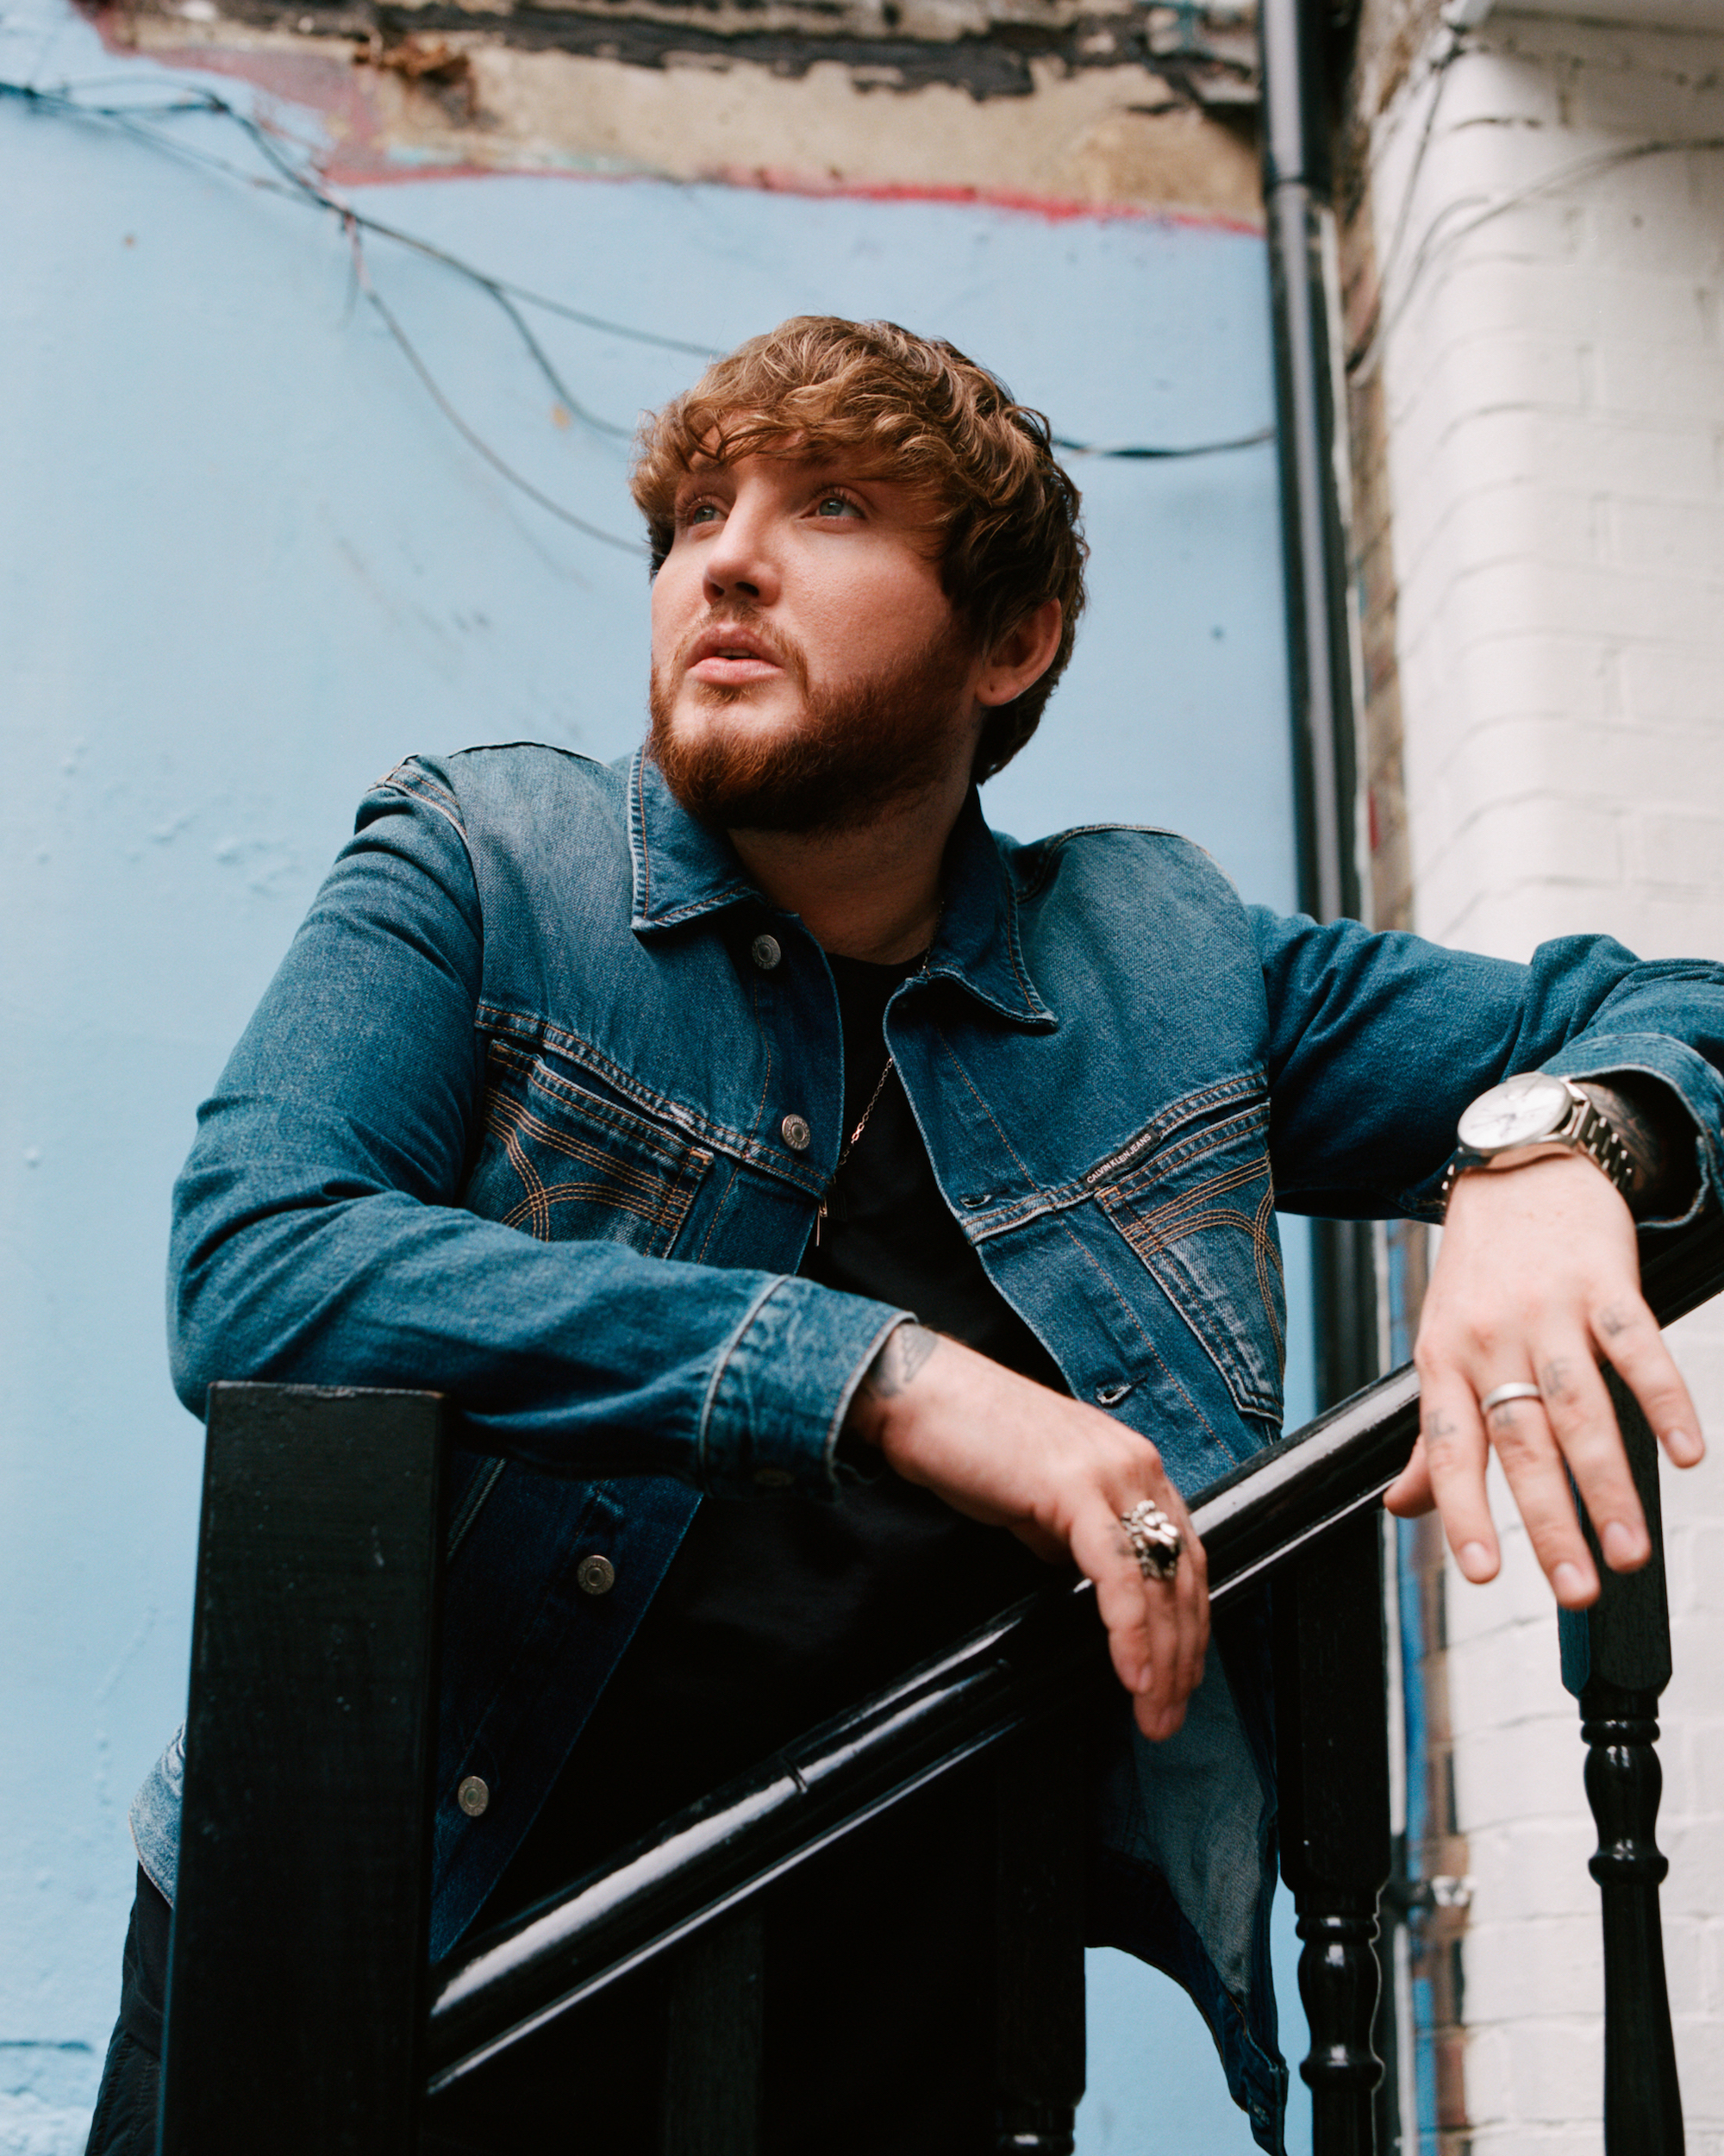 James Arthur denim jacket